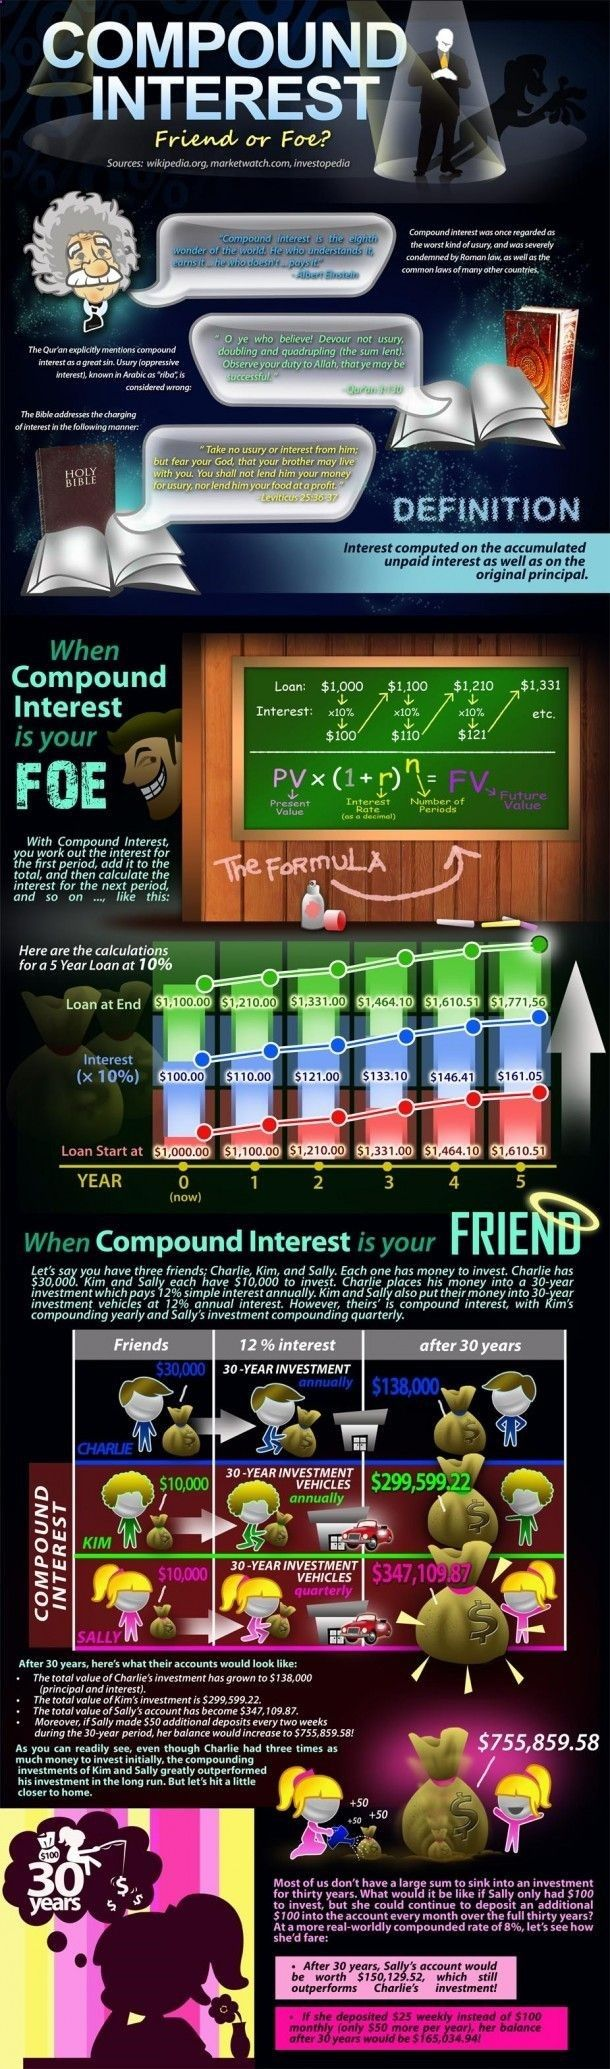 My Trade Finance Business - My Trade Finance Business - Compound Interest: Friend or Foe?[INFOGRAPHIC] Whether you wish to be a successful Scalper, Day Trader, Swing Trader, ot Position Trader ANY financial instrument can be traded including: Forex, Futures, Commodities, Stocks, E-Minis, Metals, Binary Options, Any Market. Whether you wish to be a successful Scalper, Day Trader, Swing Trader, ot Position Trader ANY financial instrument can be traded including: Forex, Futures, Commoditi...